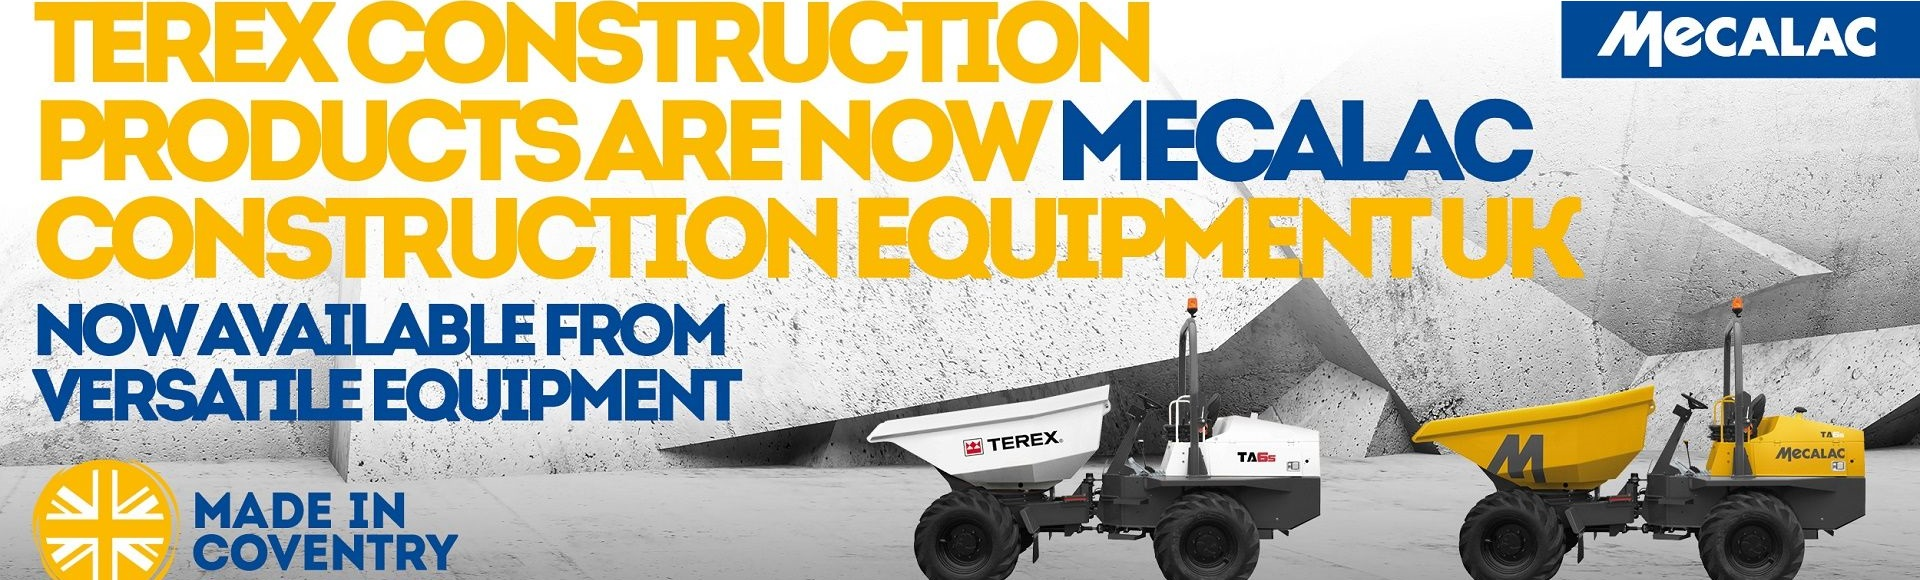 Terex-Mecalac-Versatile-Equipment-Limited